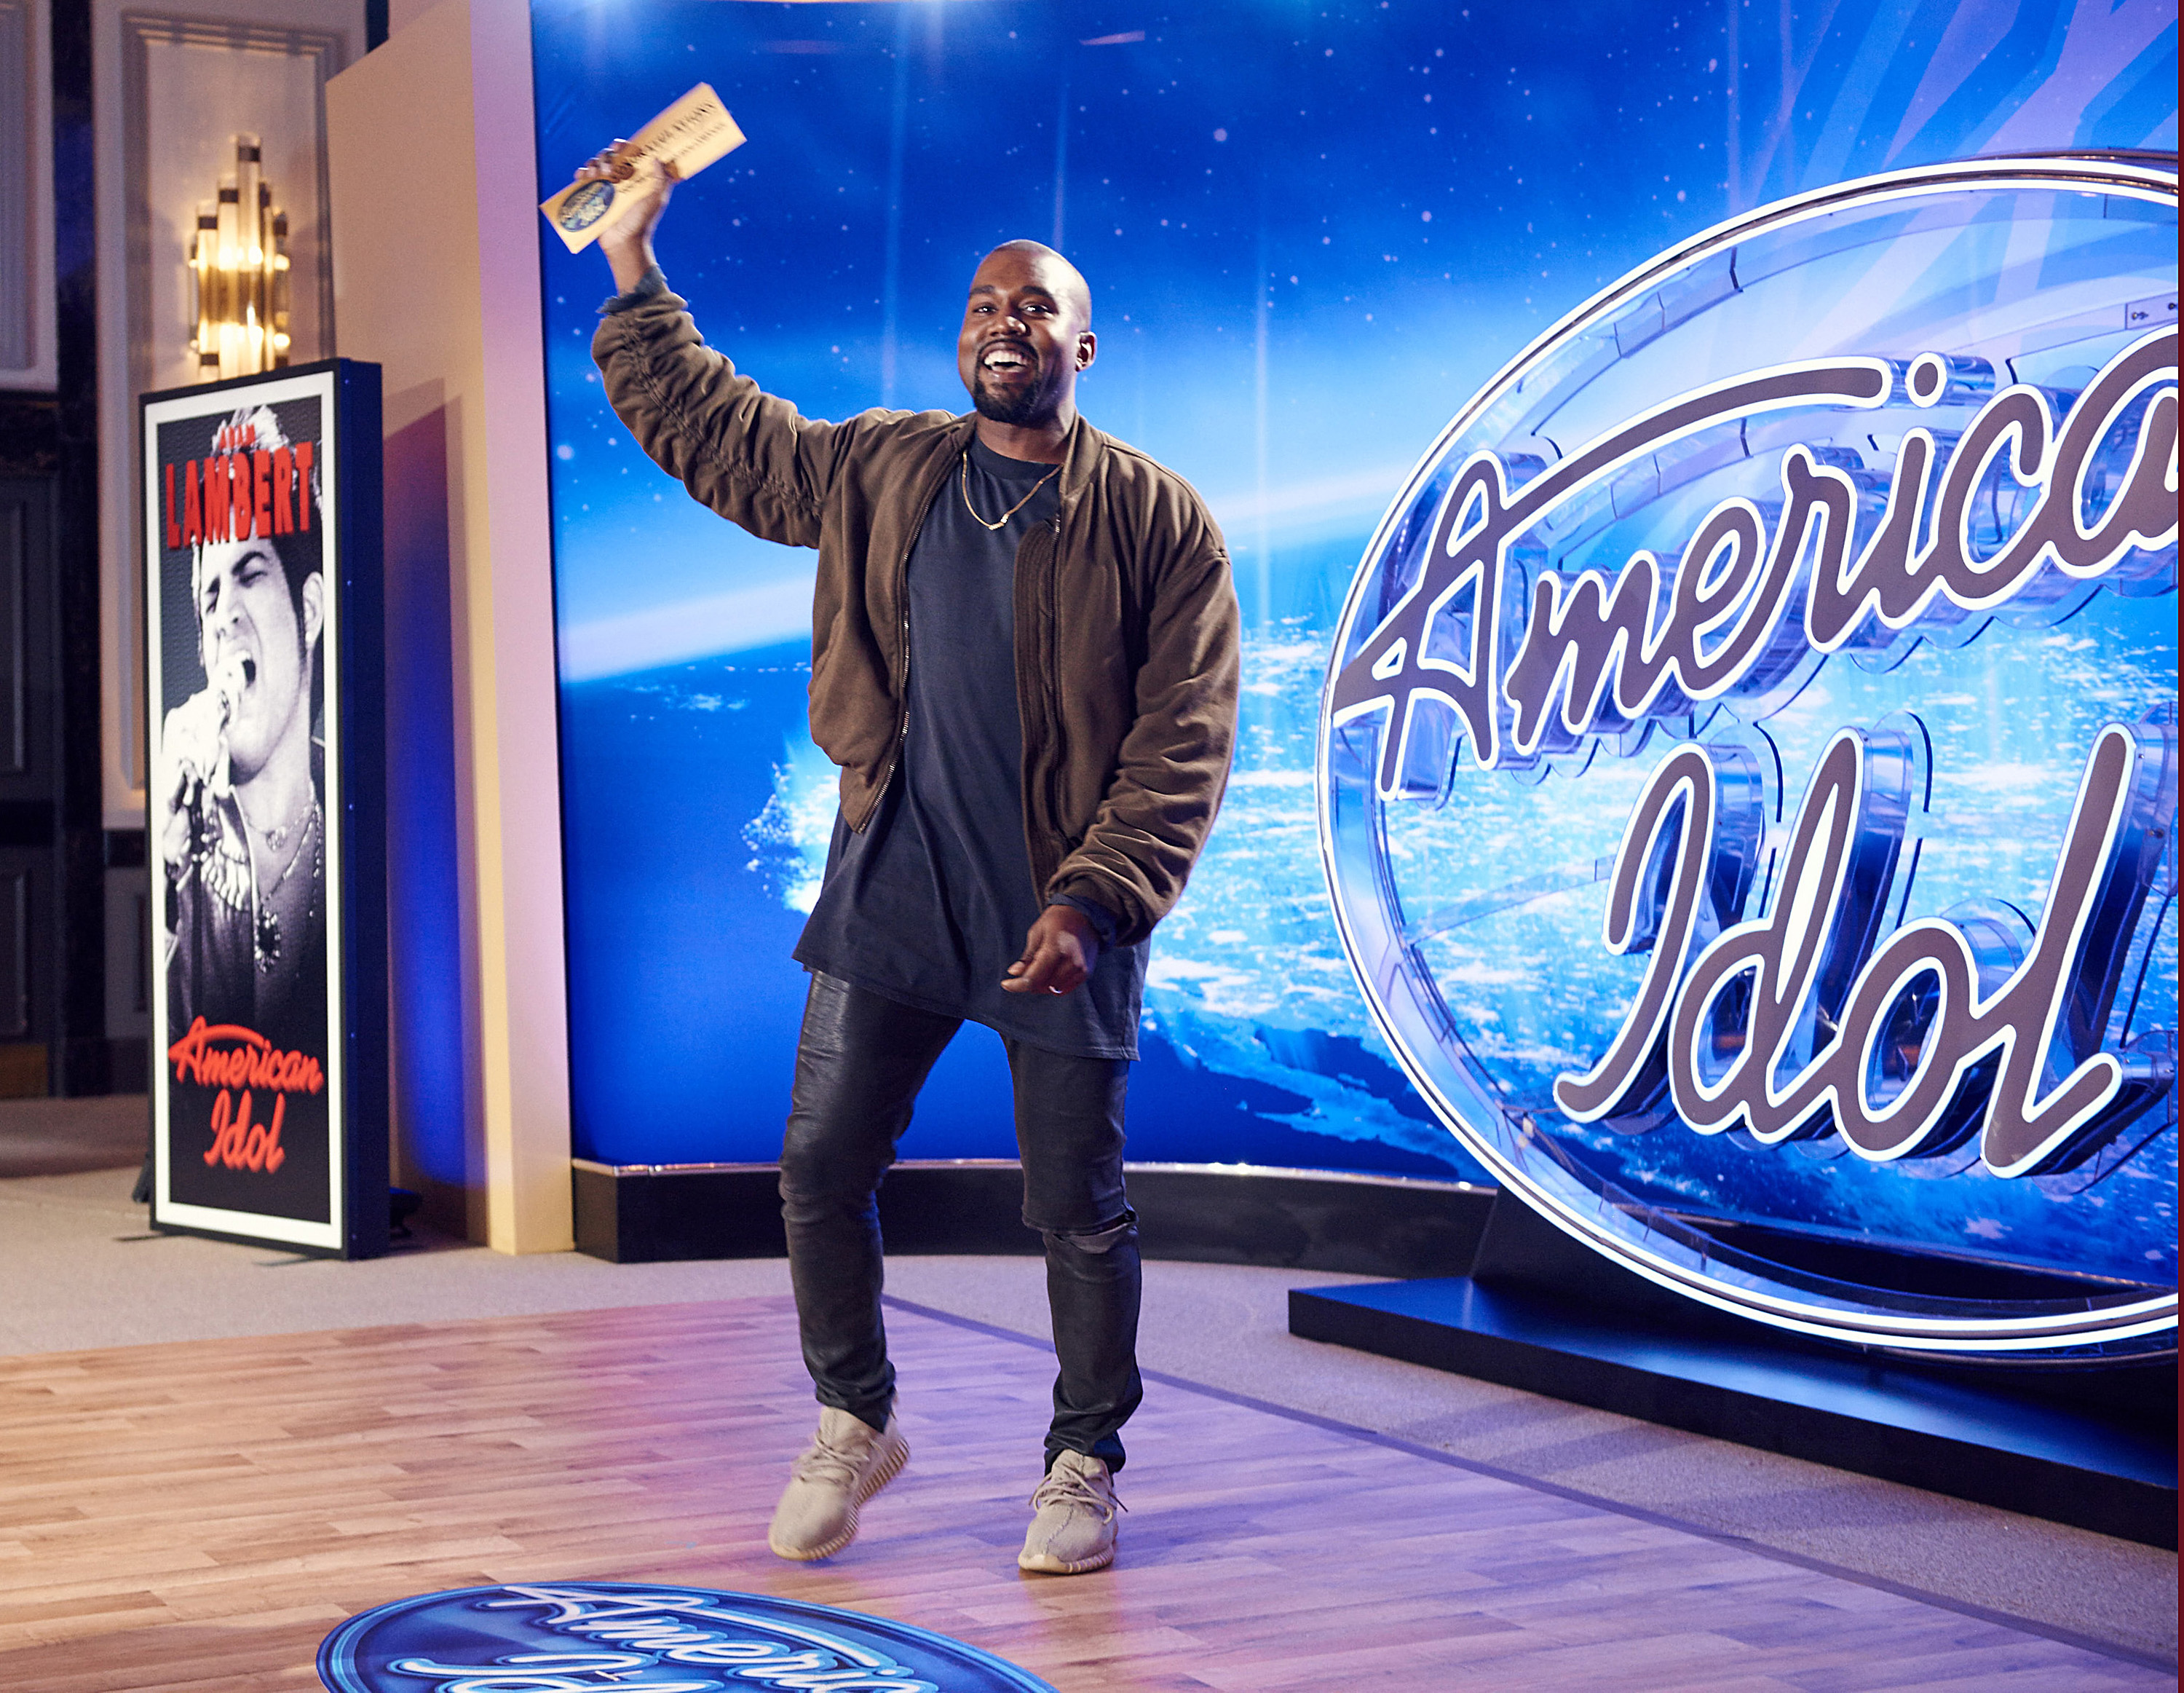 Kanye West surprises the Judges and Ryan Seacrest on American Idol by auditioning in San Francisco on Oct. 10, 2015.